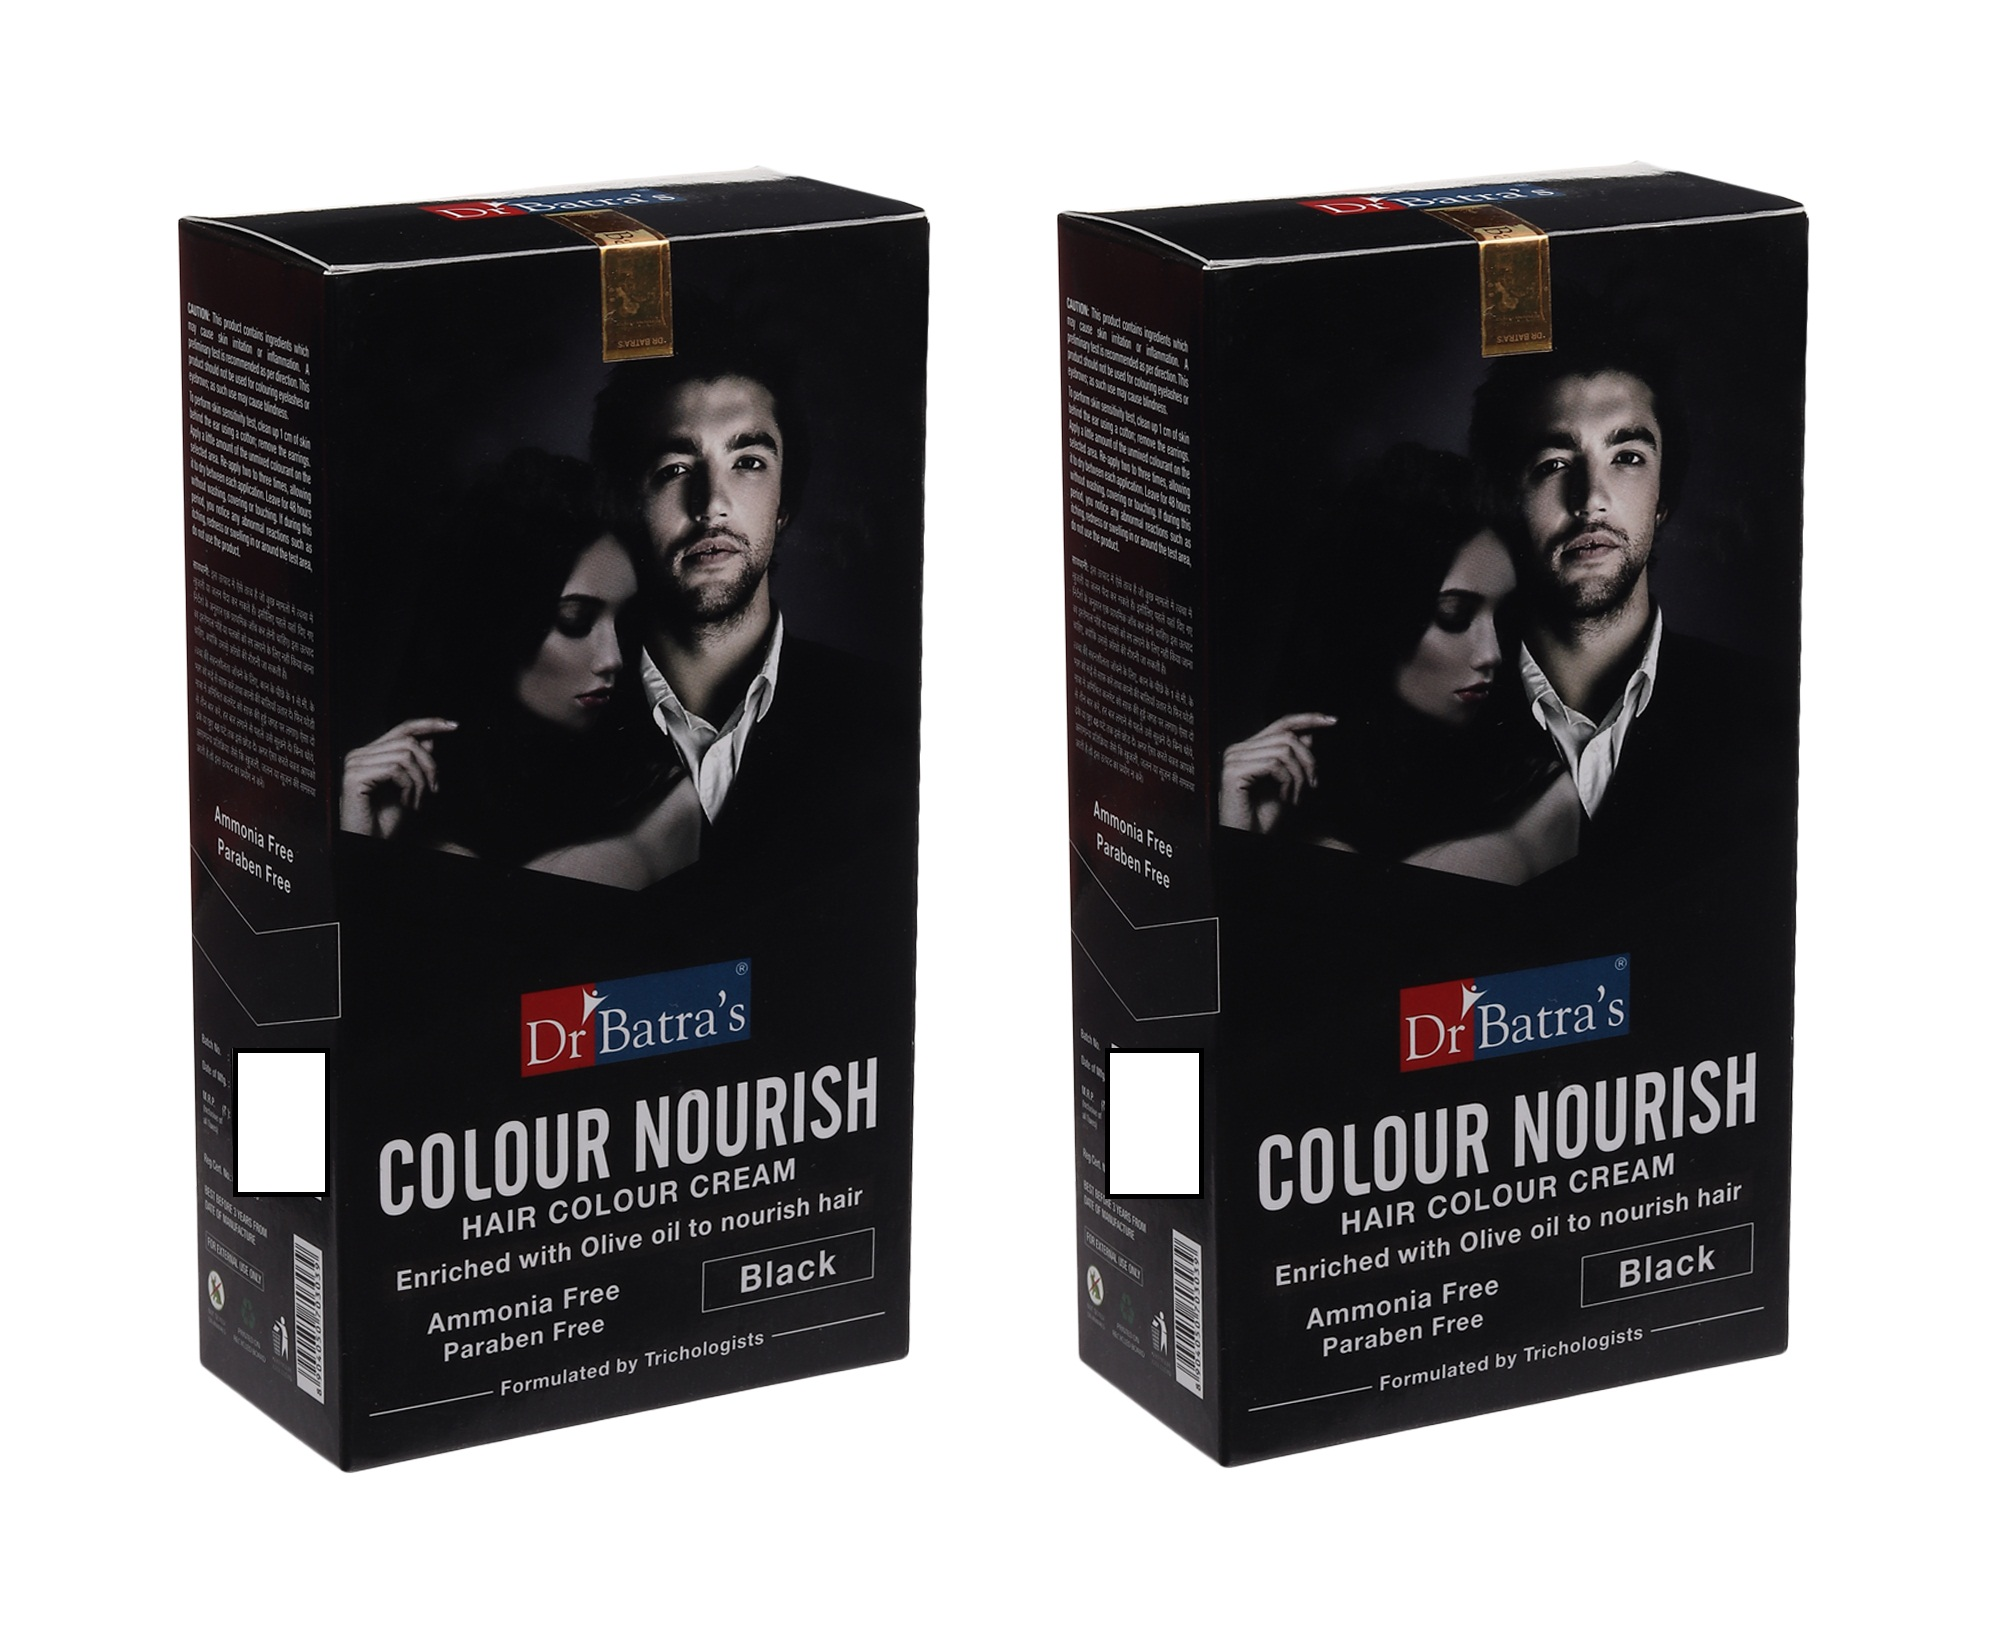 Dr Batra's | Dr Batra's Colour Nourish Hair Ammonia, Paraben Free Colour Cream Enriched With Olive Oil to Nourish Hair Black - 120 gm (Pack of 2)